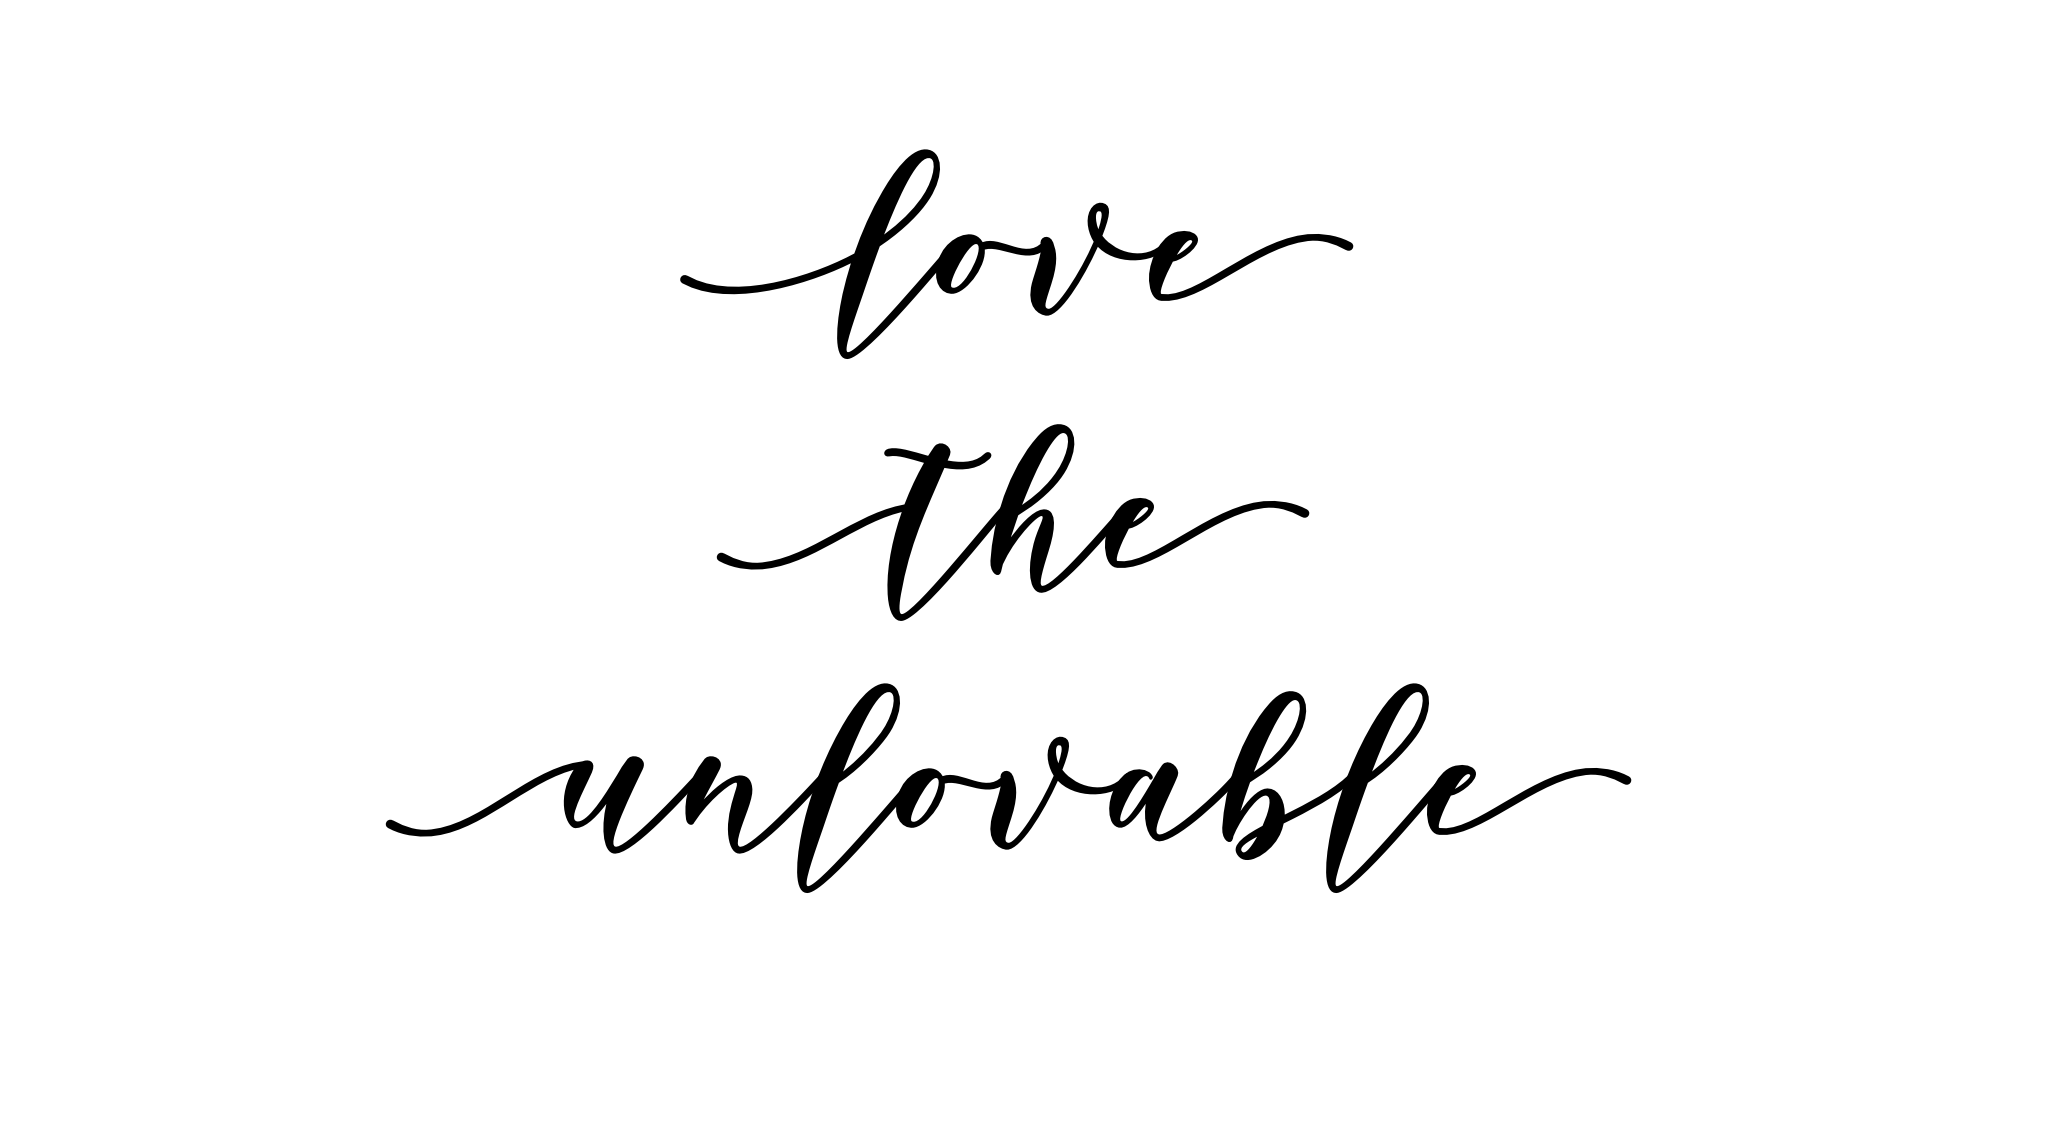 How do you teach love? – Why we need to seek to love the unlovable.